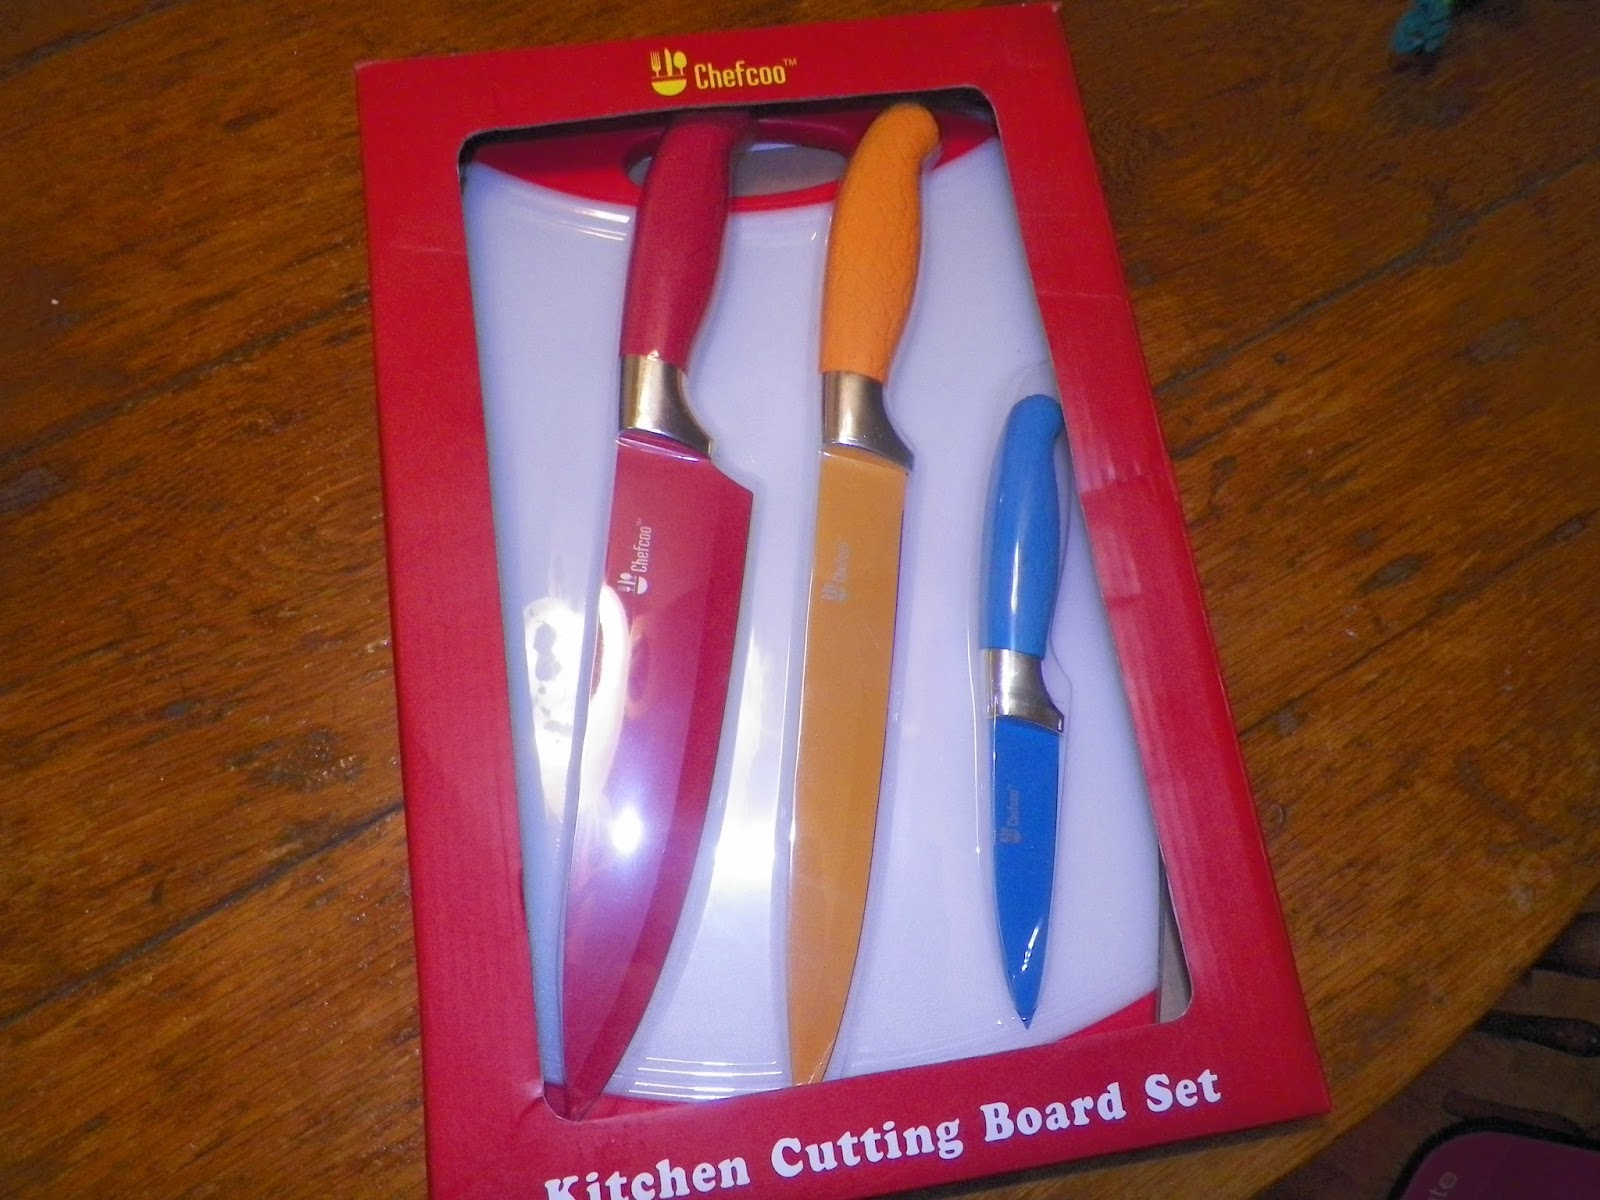 Chopping Knife Set Mygreatfinds Chefcoo Cutting Board Set Plus Non Stick